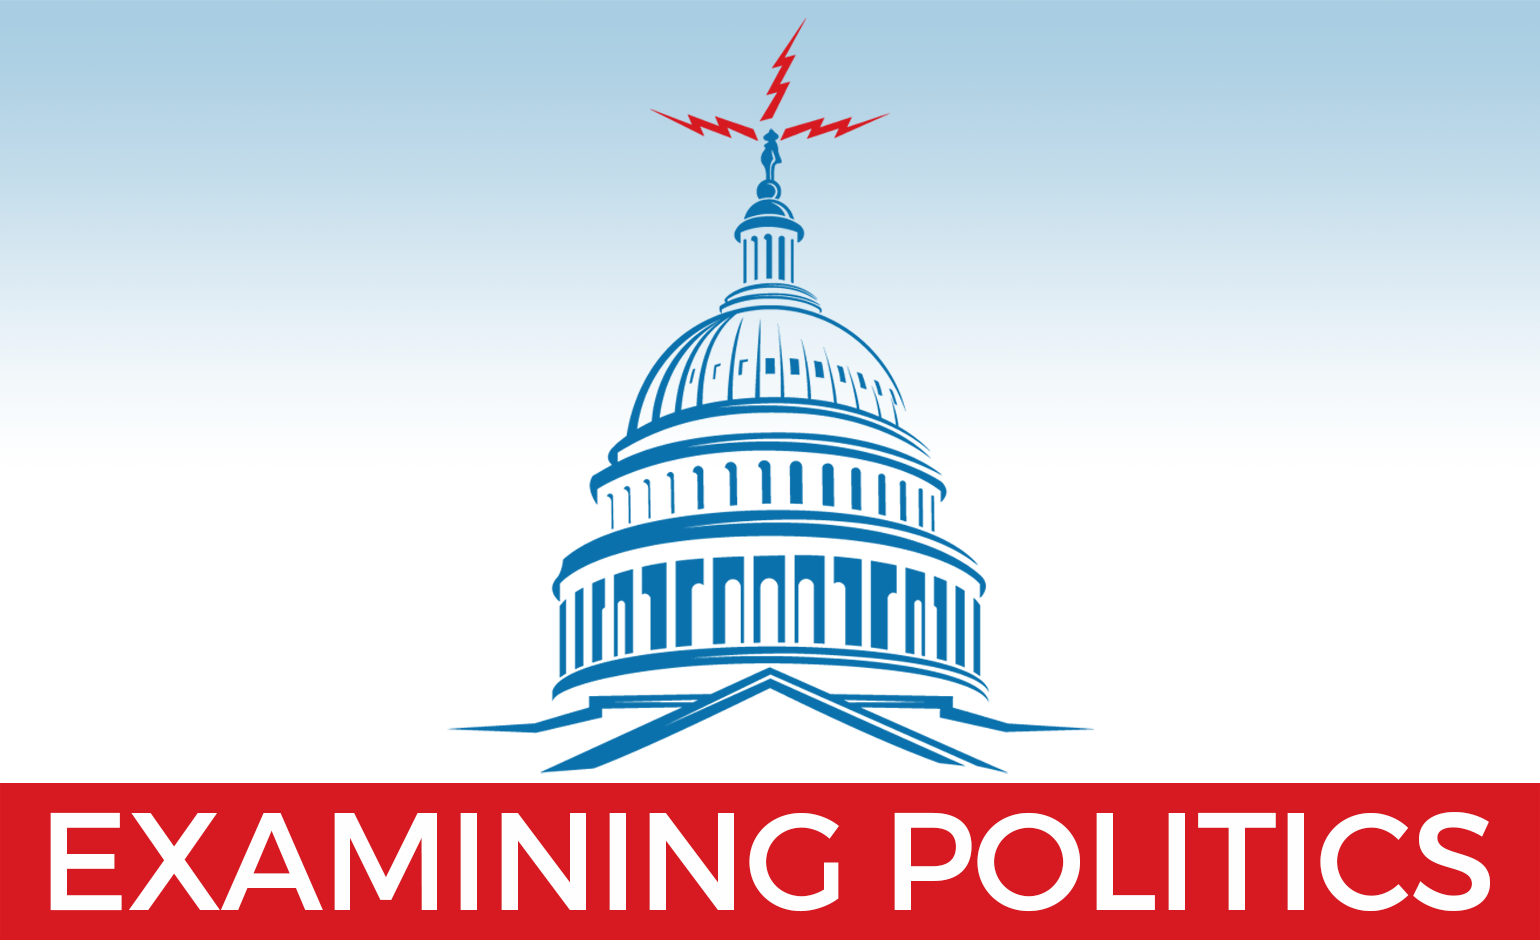 Washington Examiner: Political News and Analysis About Congress, the